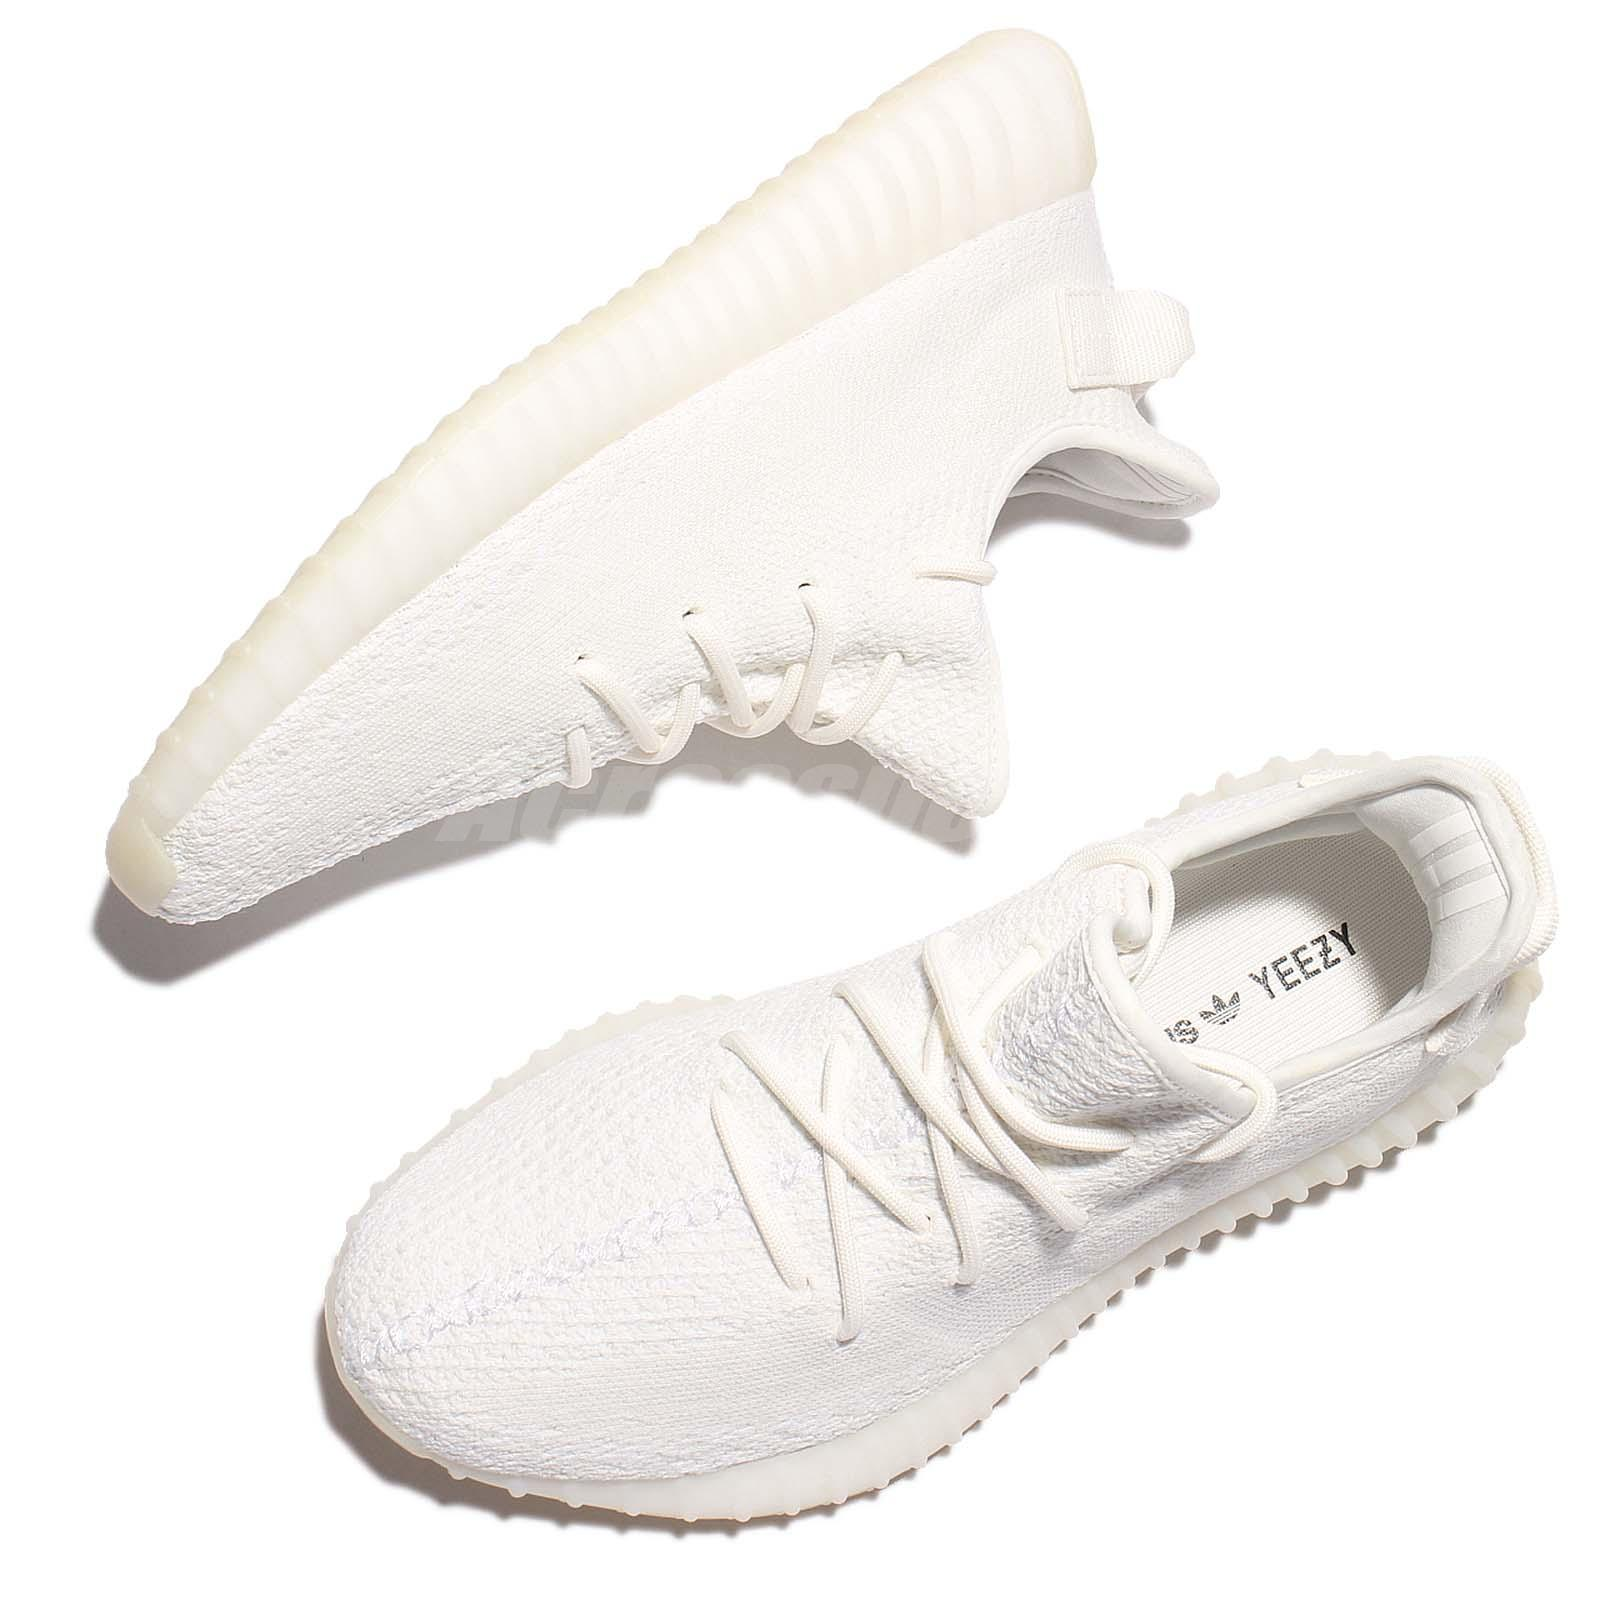 cheap for discount 8ab44 4b330 adidas Yeezy Boost 350 V2 Cream Triple White Kanye West Fash